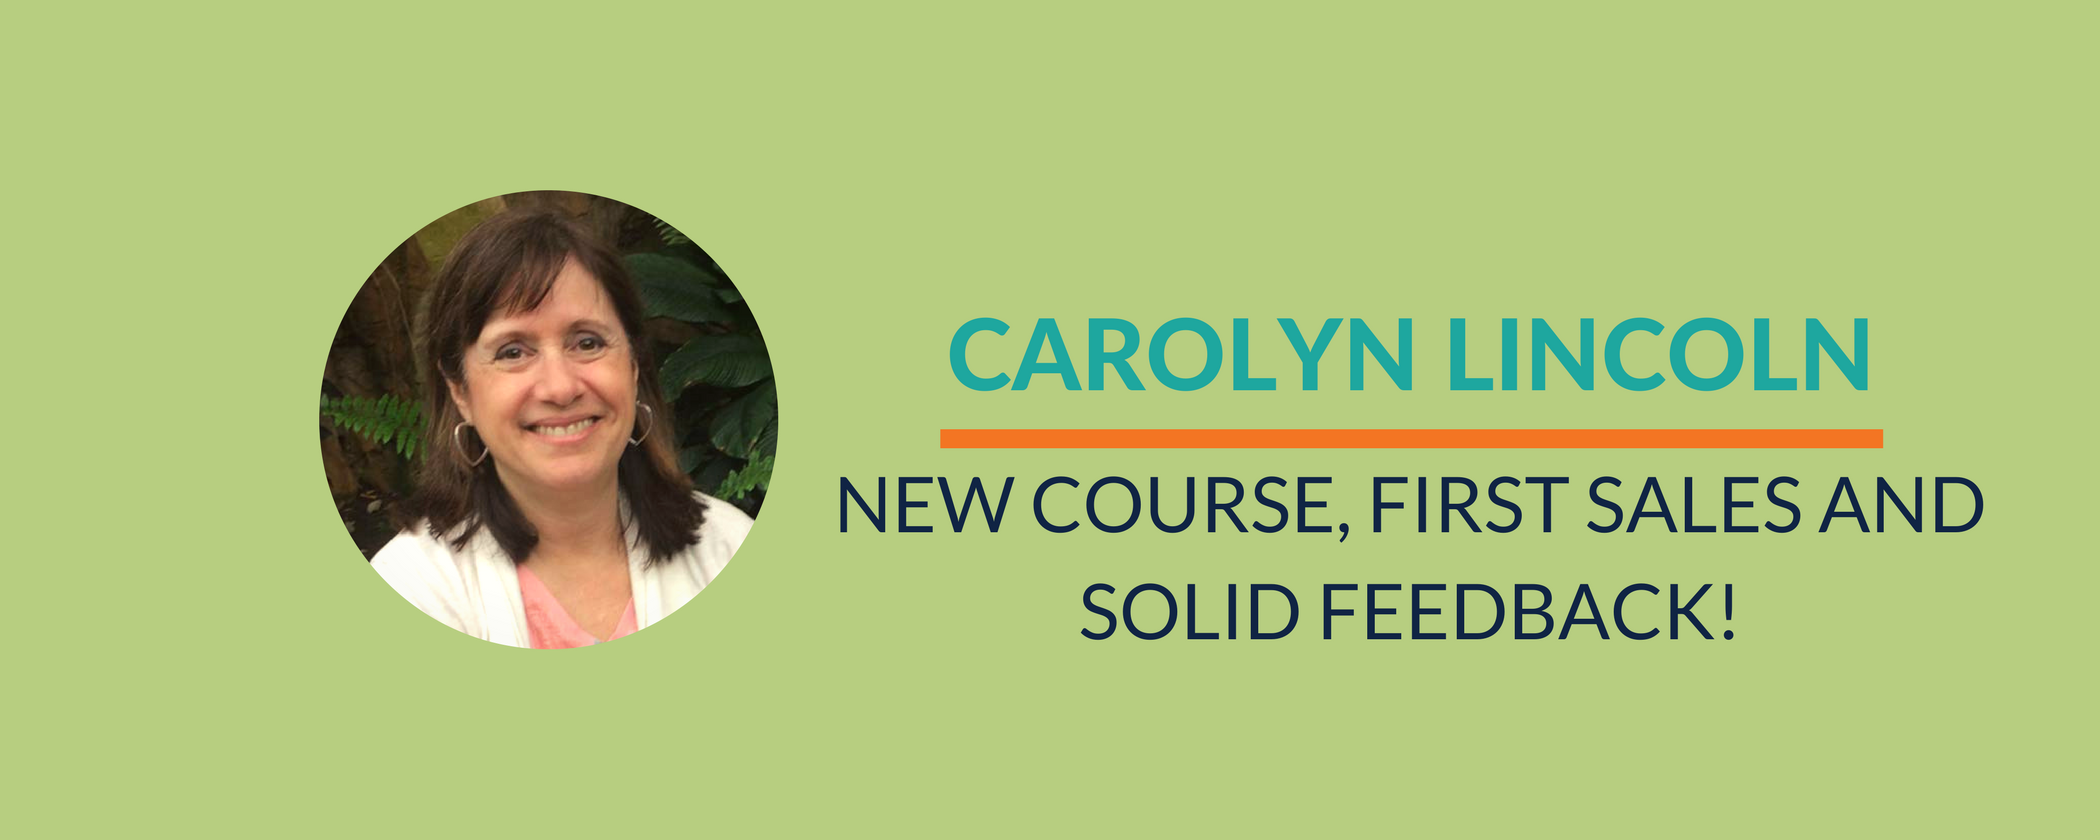 Success Story: Carolyn receives fantastic reviews, thanks to NEW course!